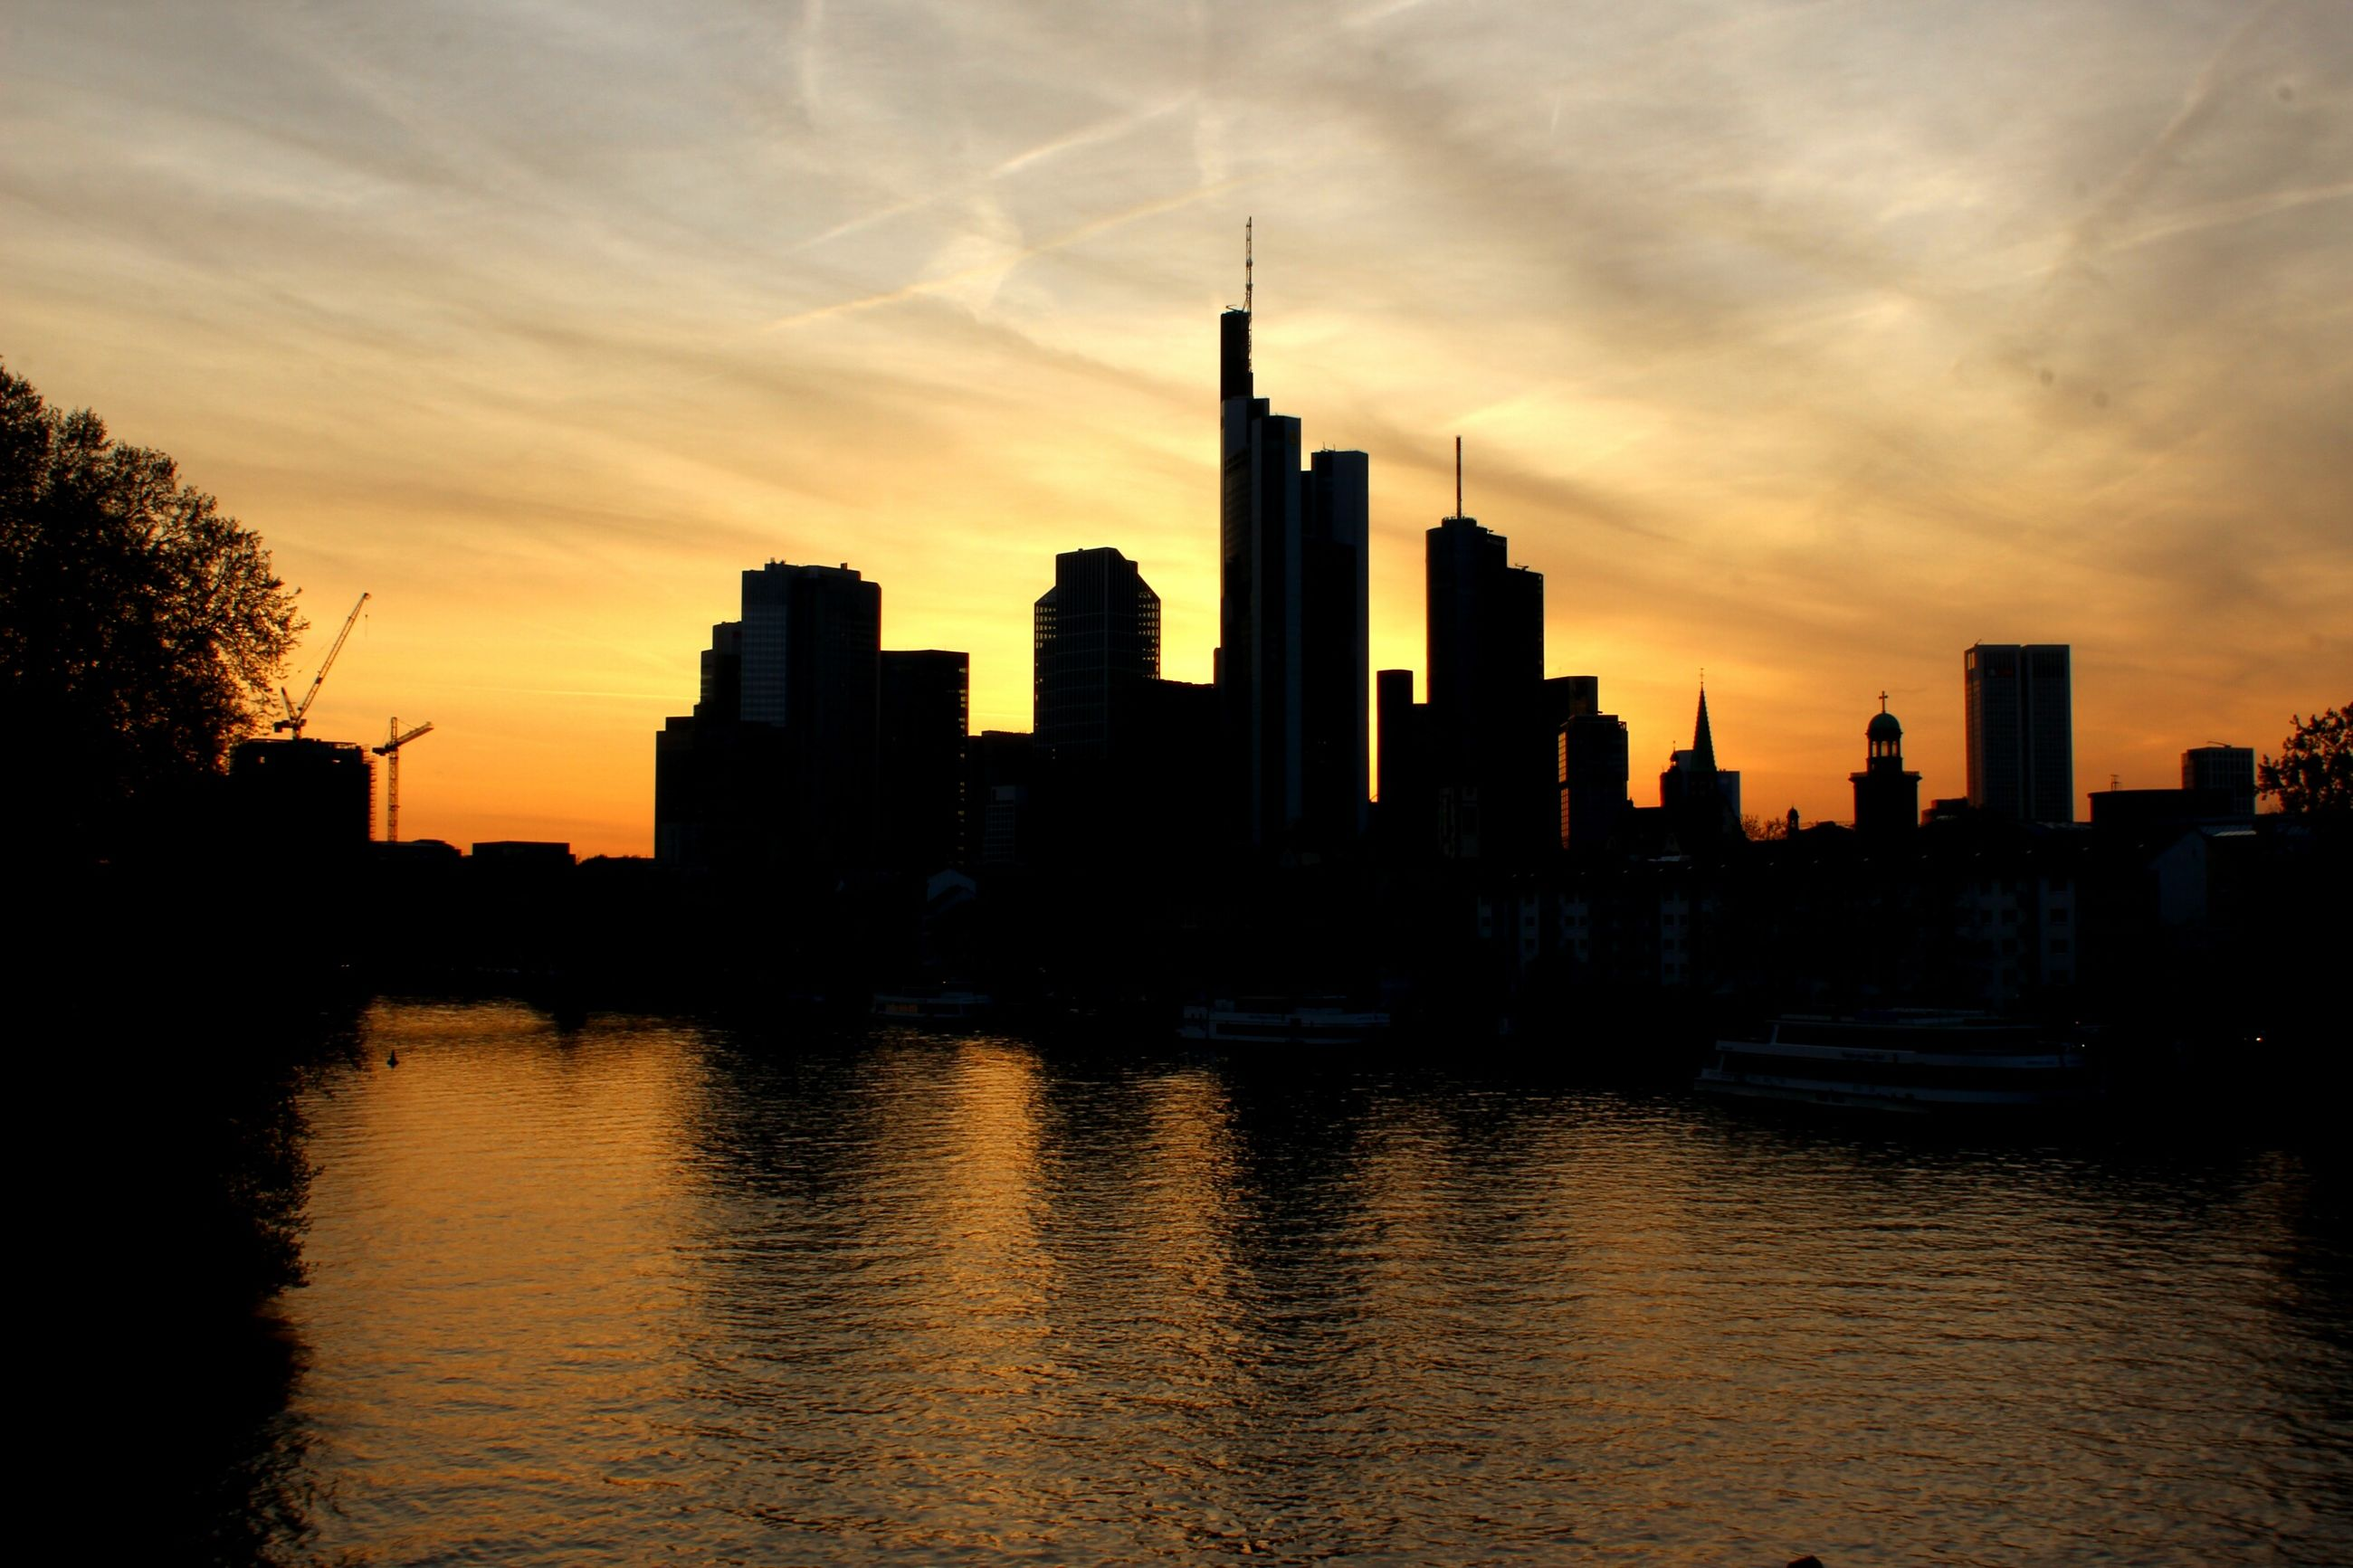 sunset, building exterior, architecture, built structure, water, silhouette, waterfront, city, sky, skyscraper, reflection, urban skyline, river, cityscape, cloud - sky, skyline, orange color, tower, tall - high, modern